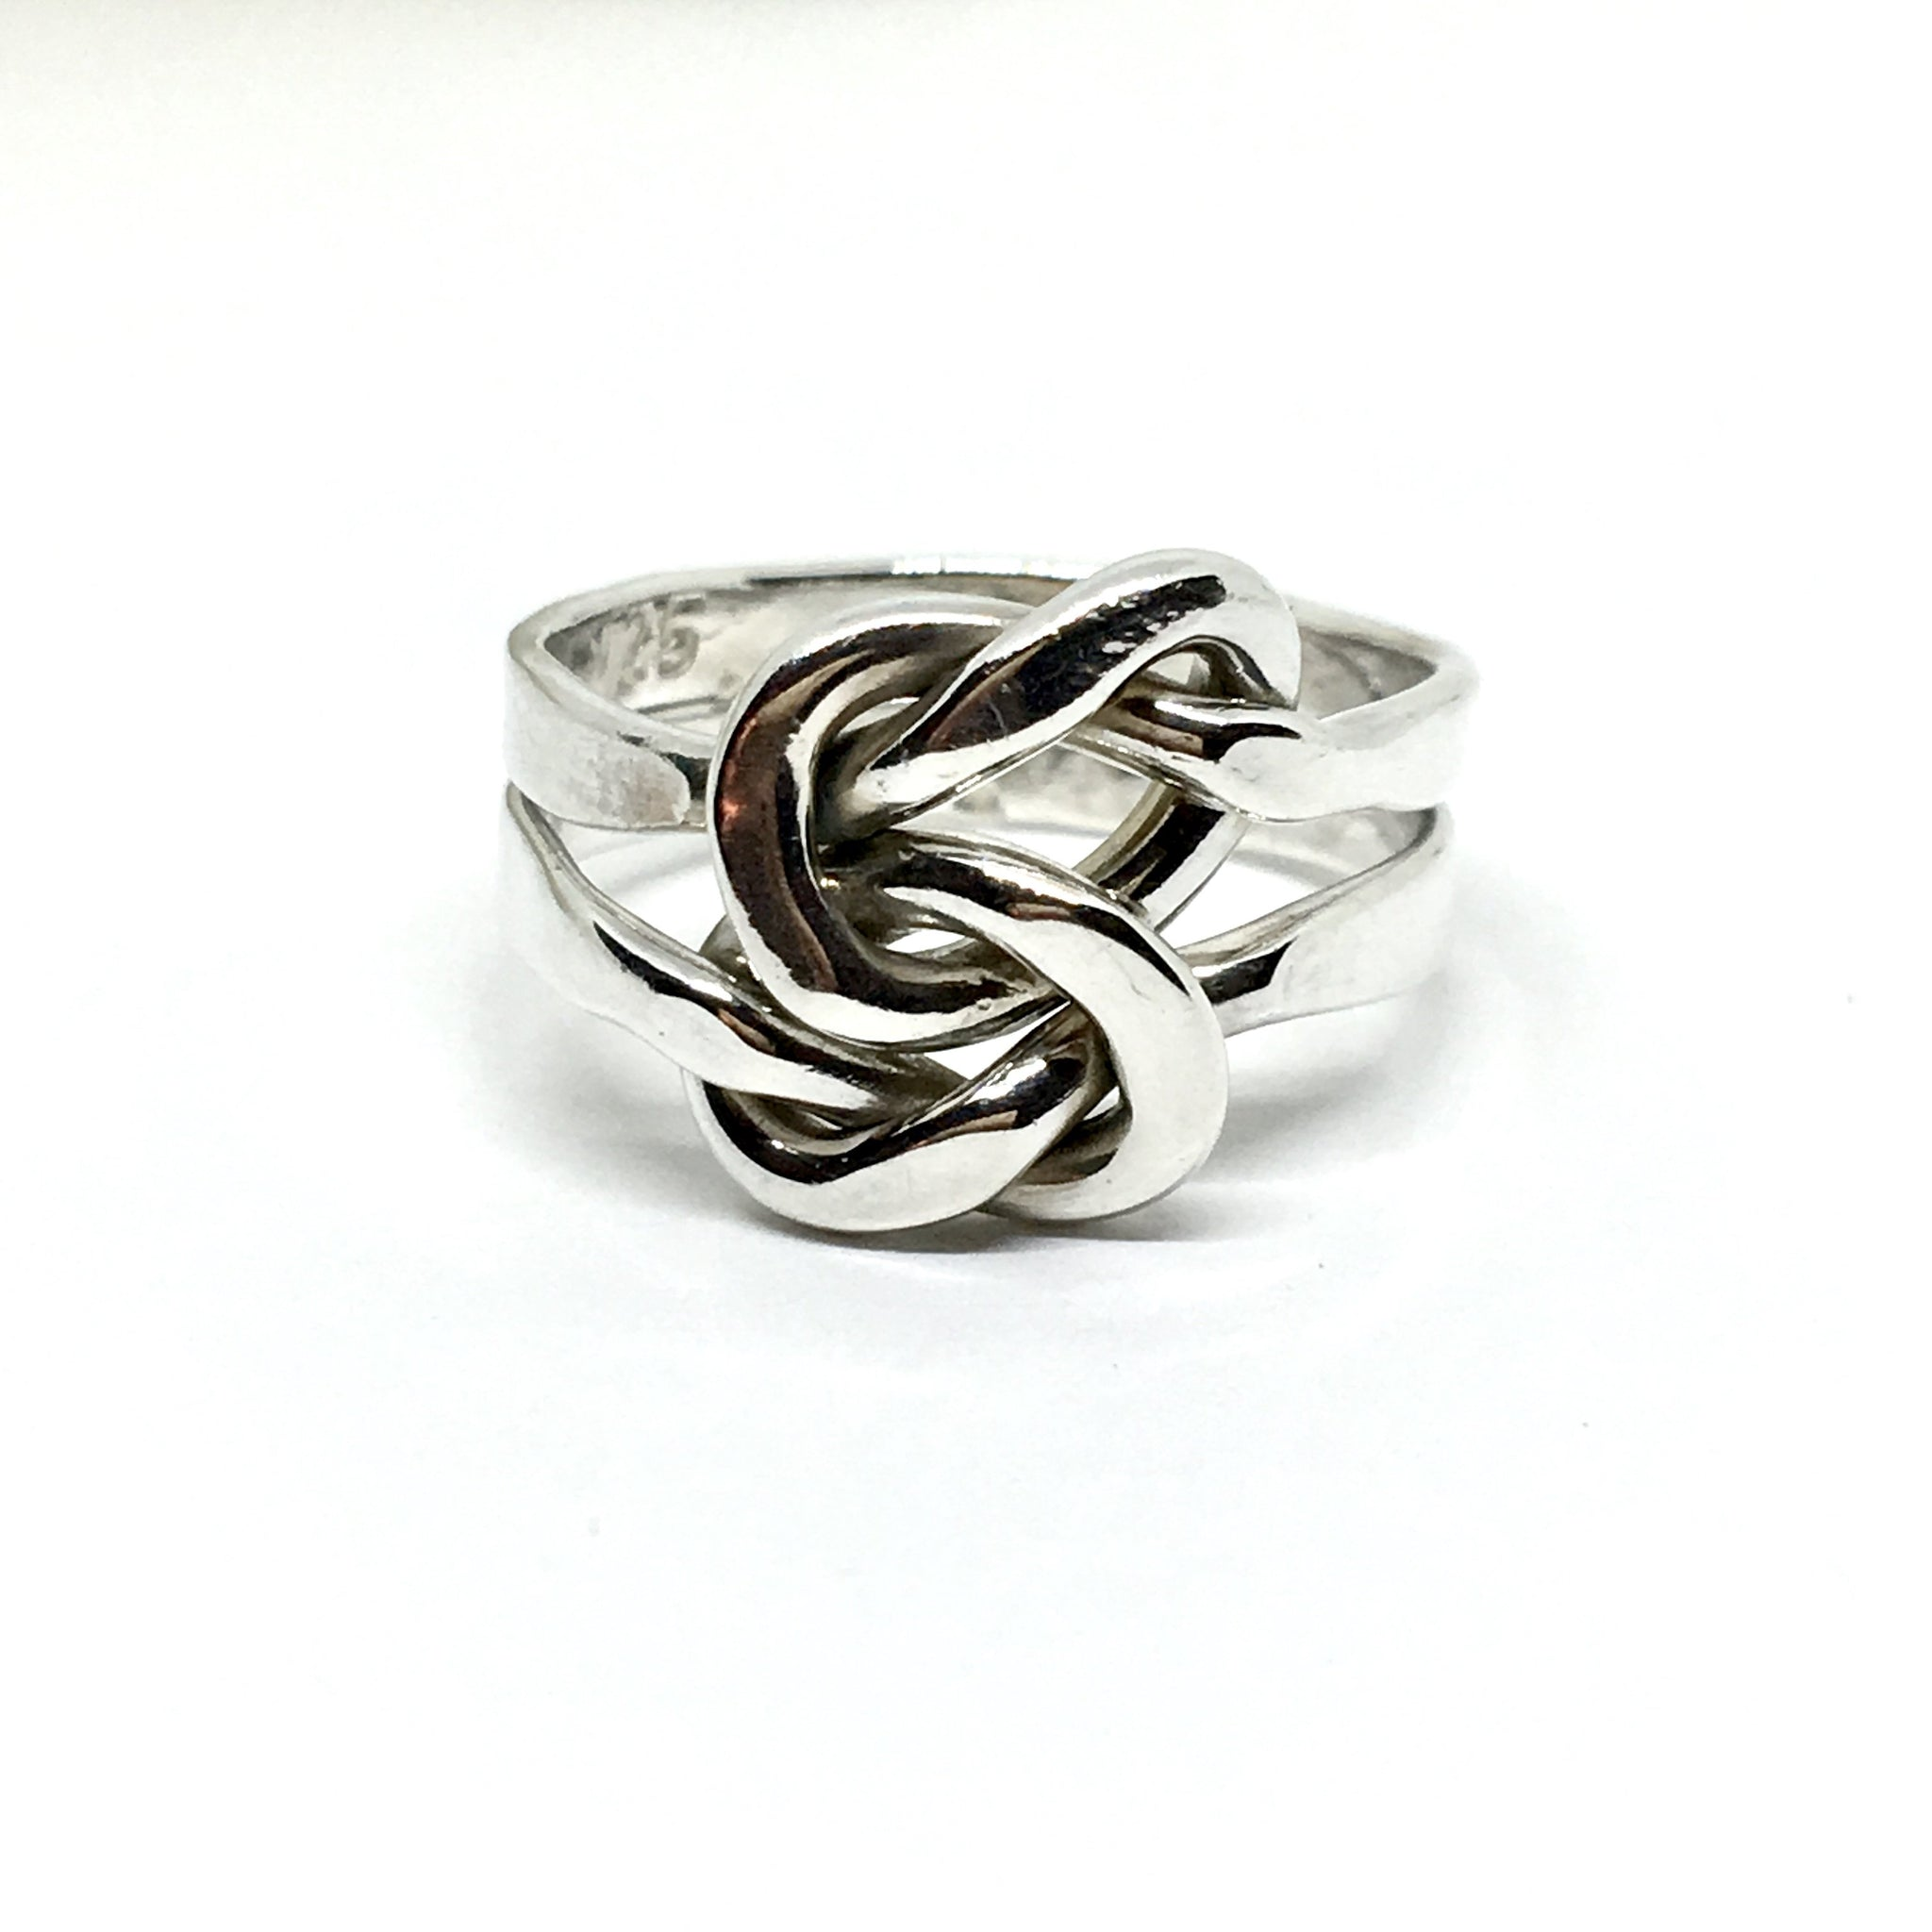 Knot Ring Interlocking Stacked Design Band Solid Silver 6 75 Great Deal Blingschlingers Jewelry